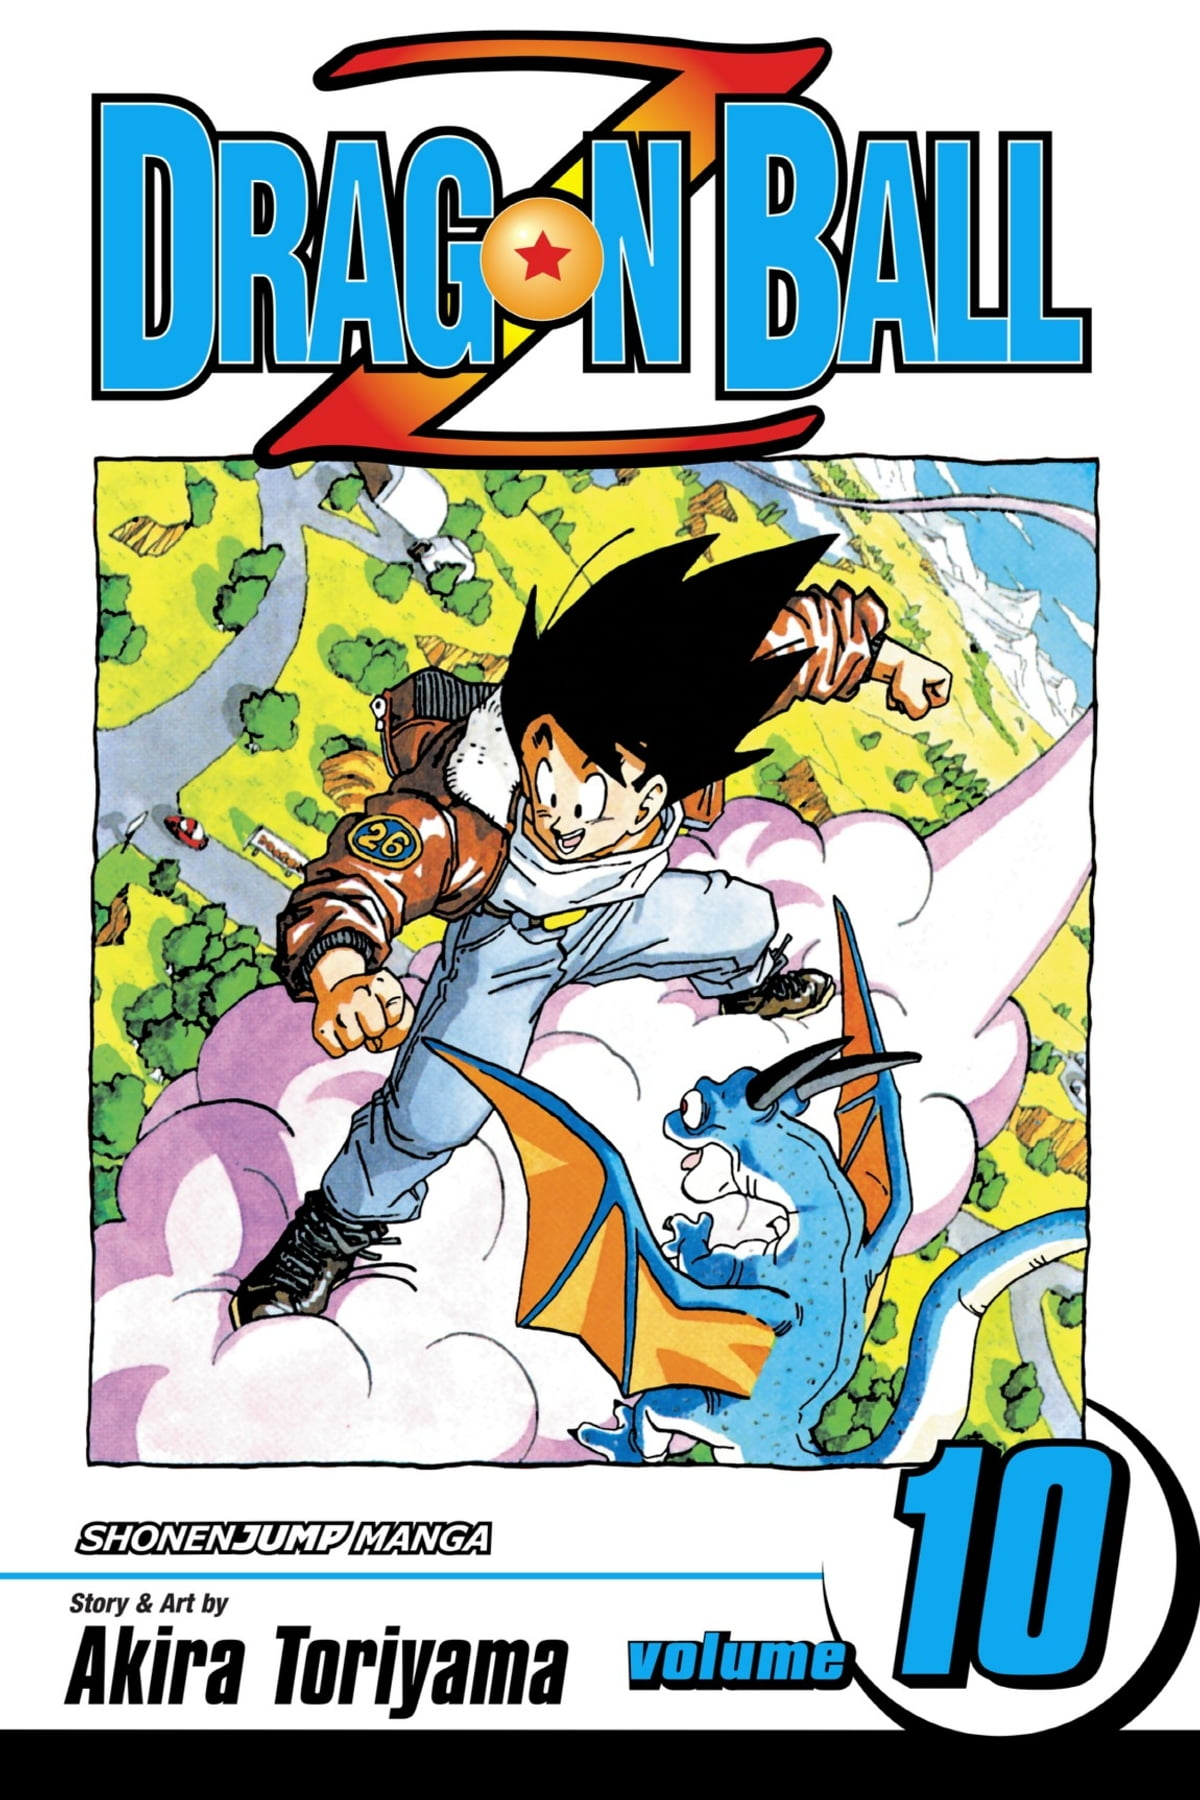 Dragon ball vol 1 ebook by akira toriyama 9781421545752 dragon ball z vol 10 goku vs freeza ebook by akira toriyama fandeluxe Ebook collections